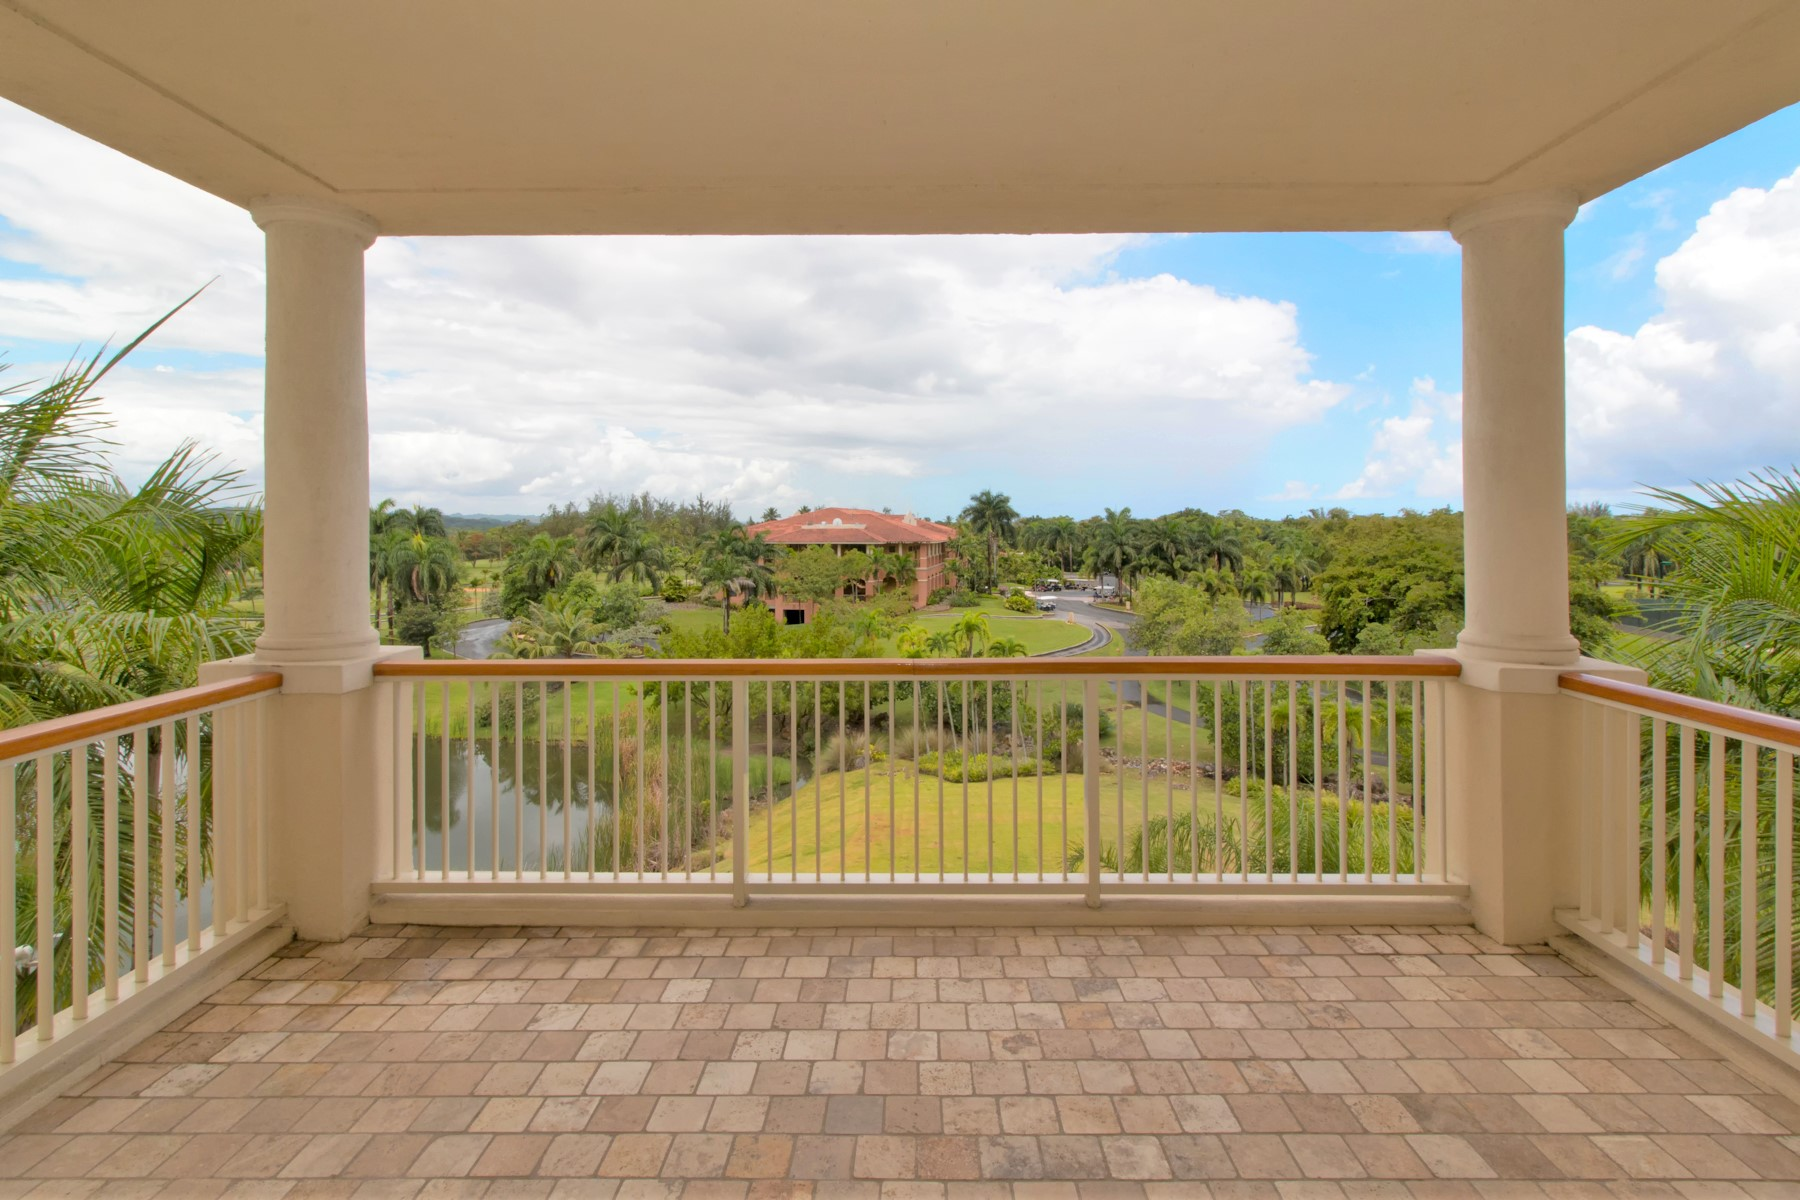 Additional photo for property listing at Duplex 4 Bedroom at Plantation Residences Plantation Village, Dorado Beach Building 1, Apt 207 Dorado, Puerto Rico 00646 Puerto Rico